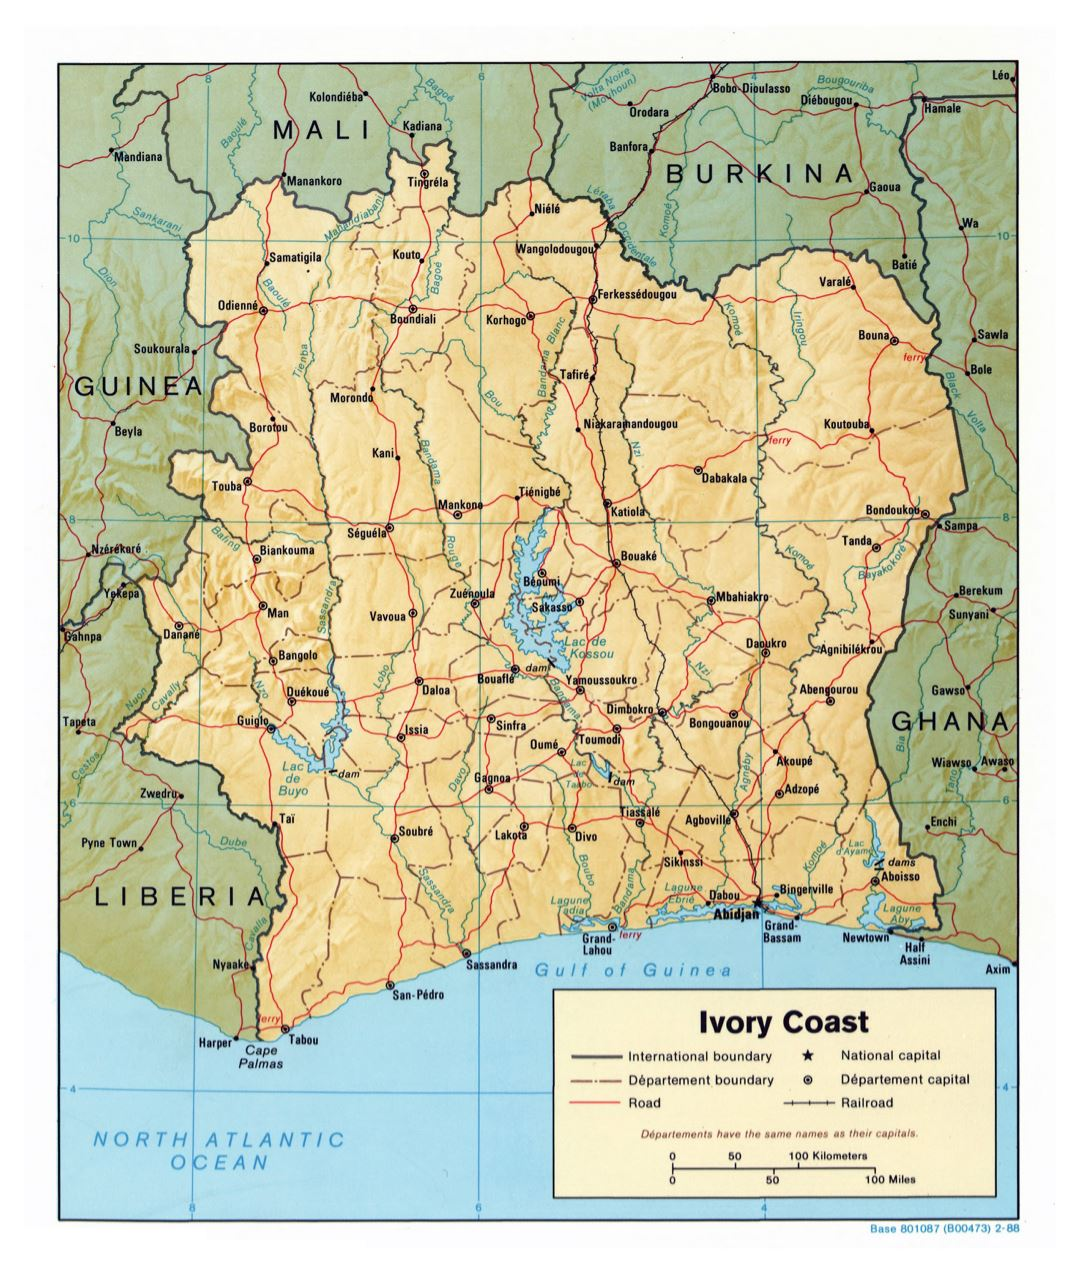 Large scale political and administrative map of Cote d'Ivoire with relief, roads, railroads and major cities - 1988